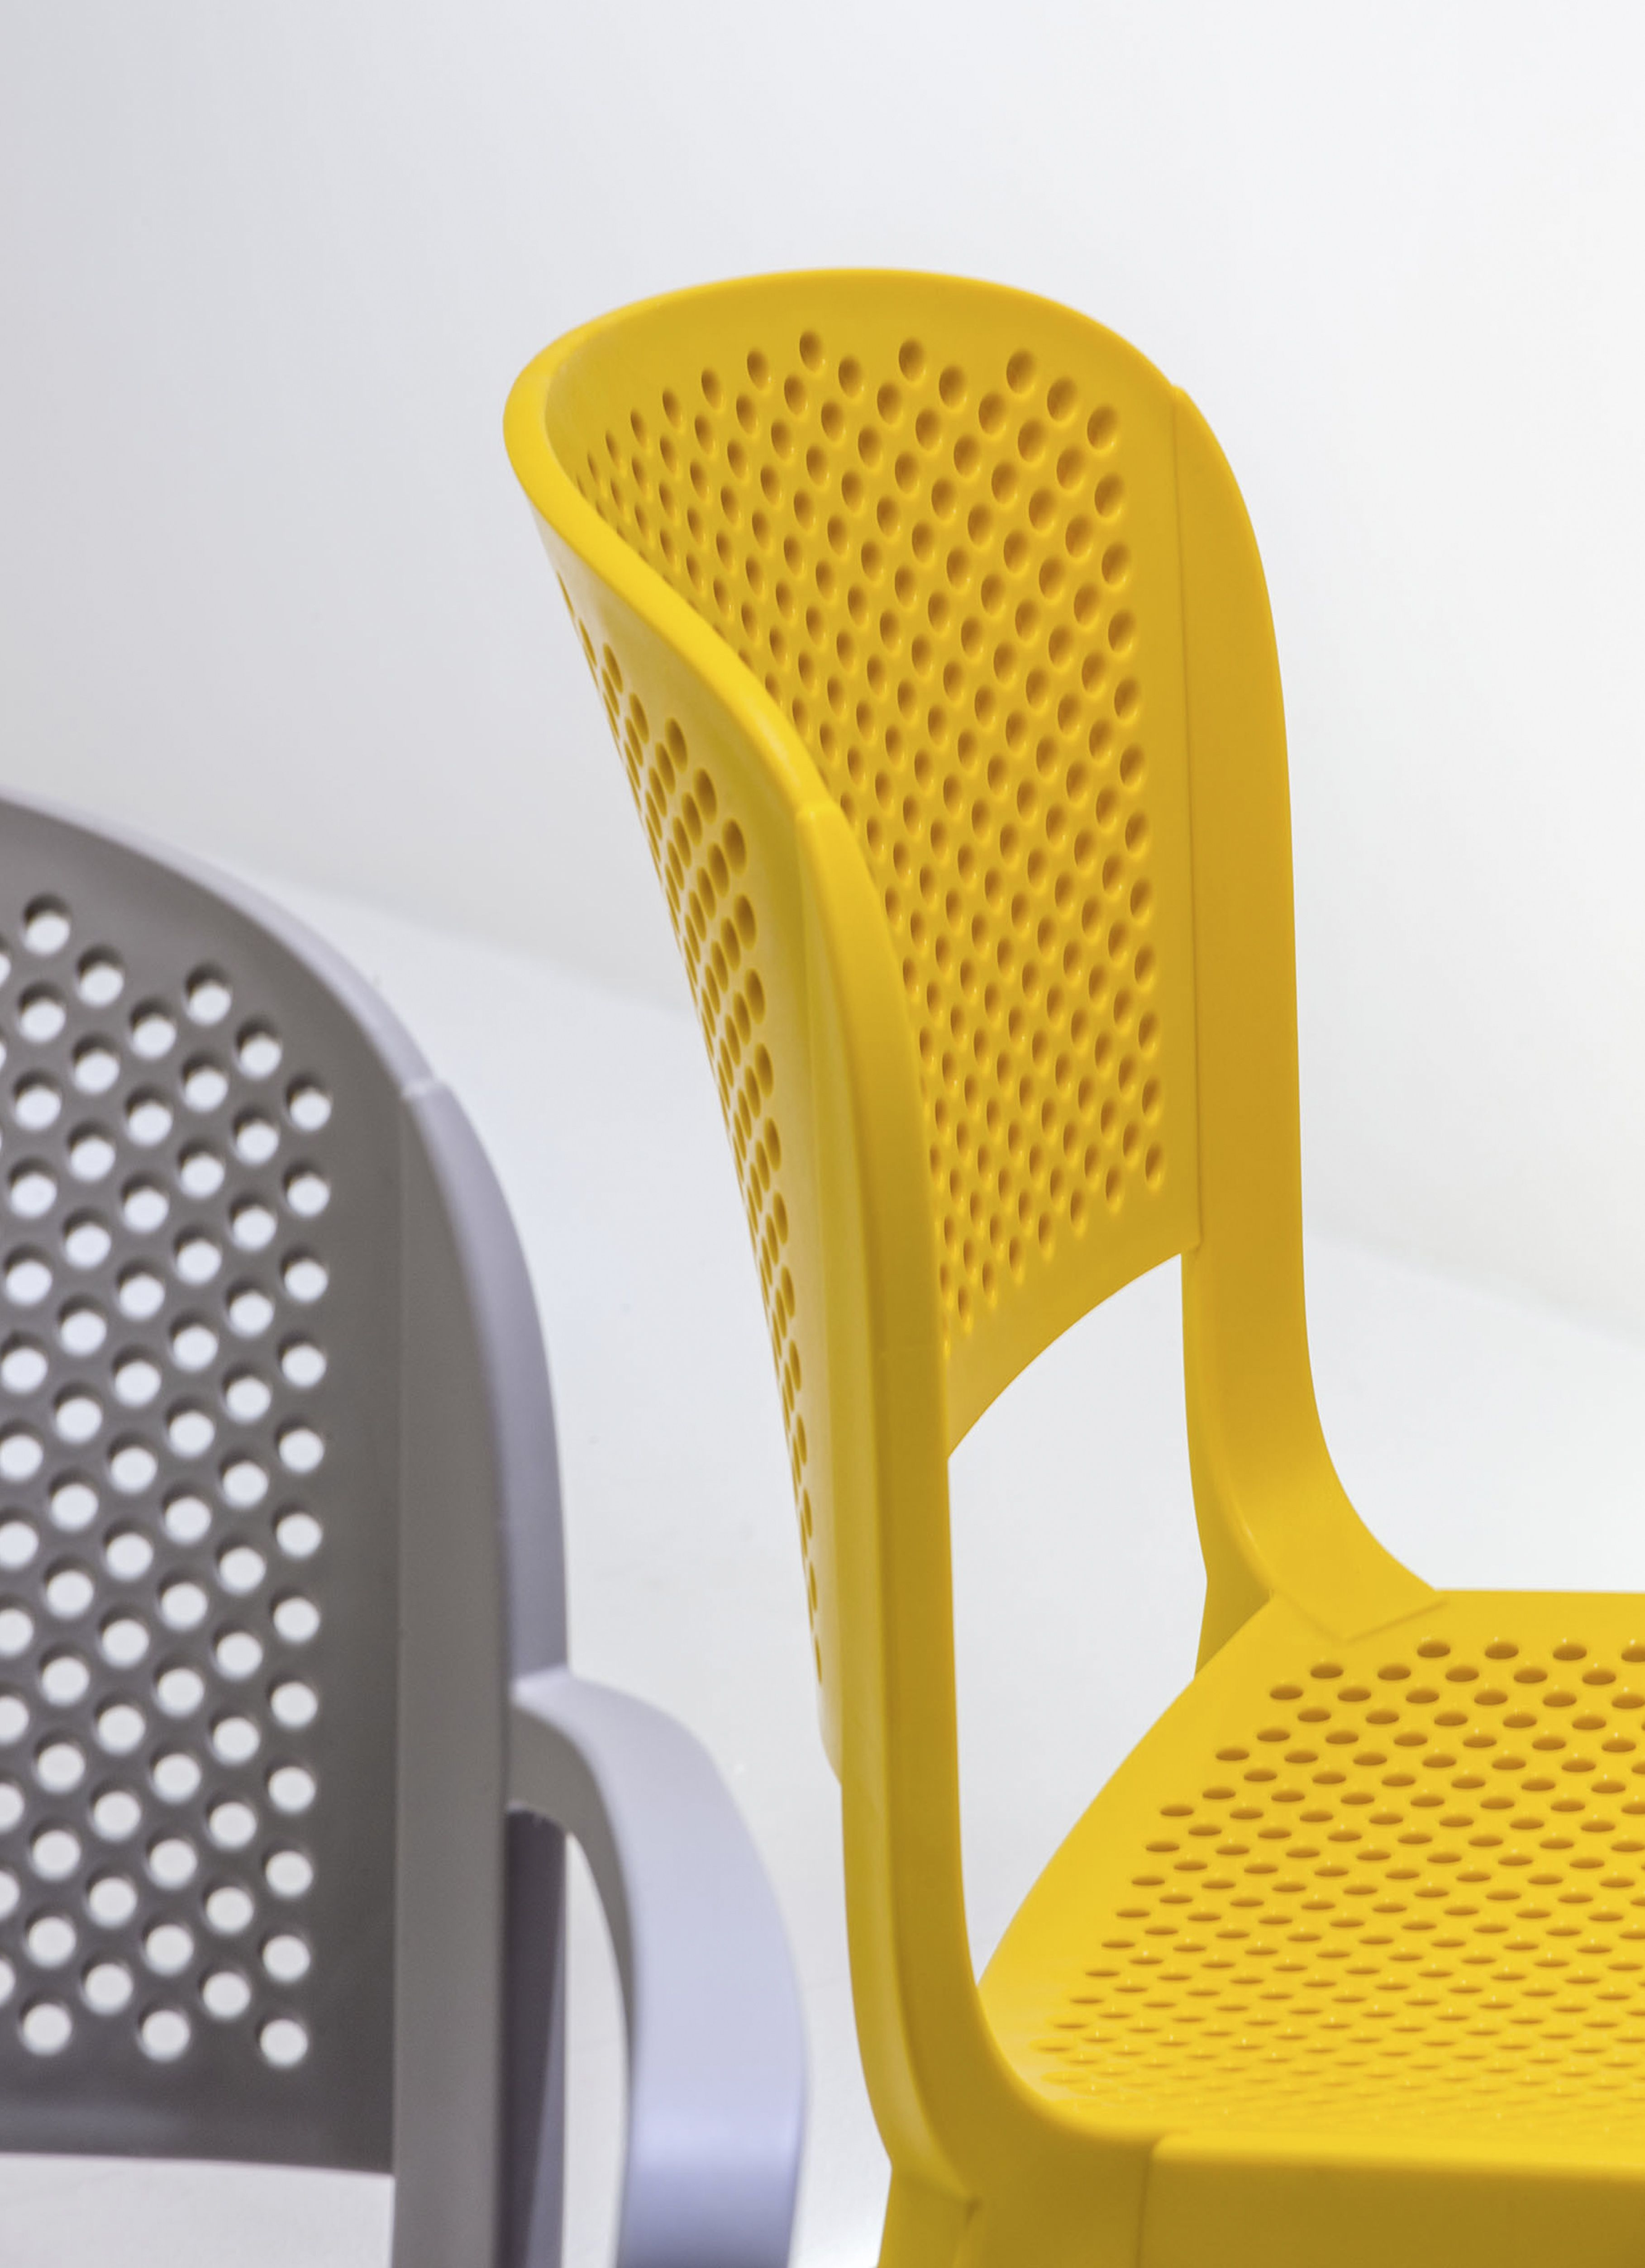 Monte sua my chair - Dome Perforated Seat And Back Pedrali Chair Yellow Design Odo Fioravanti